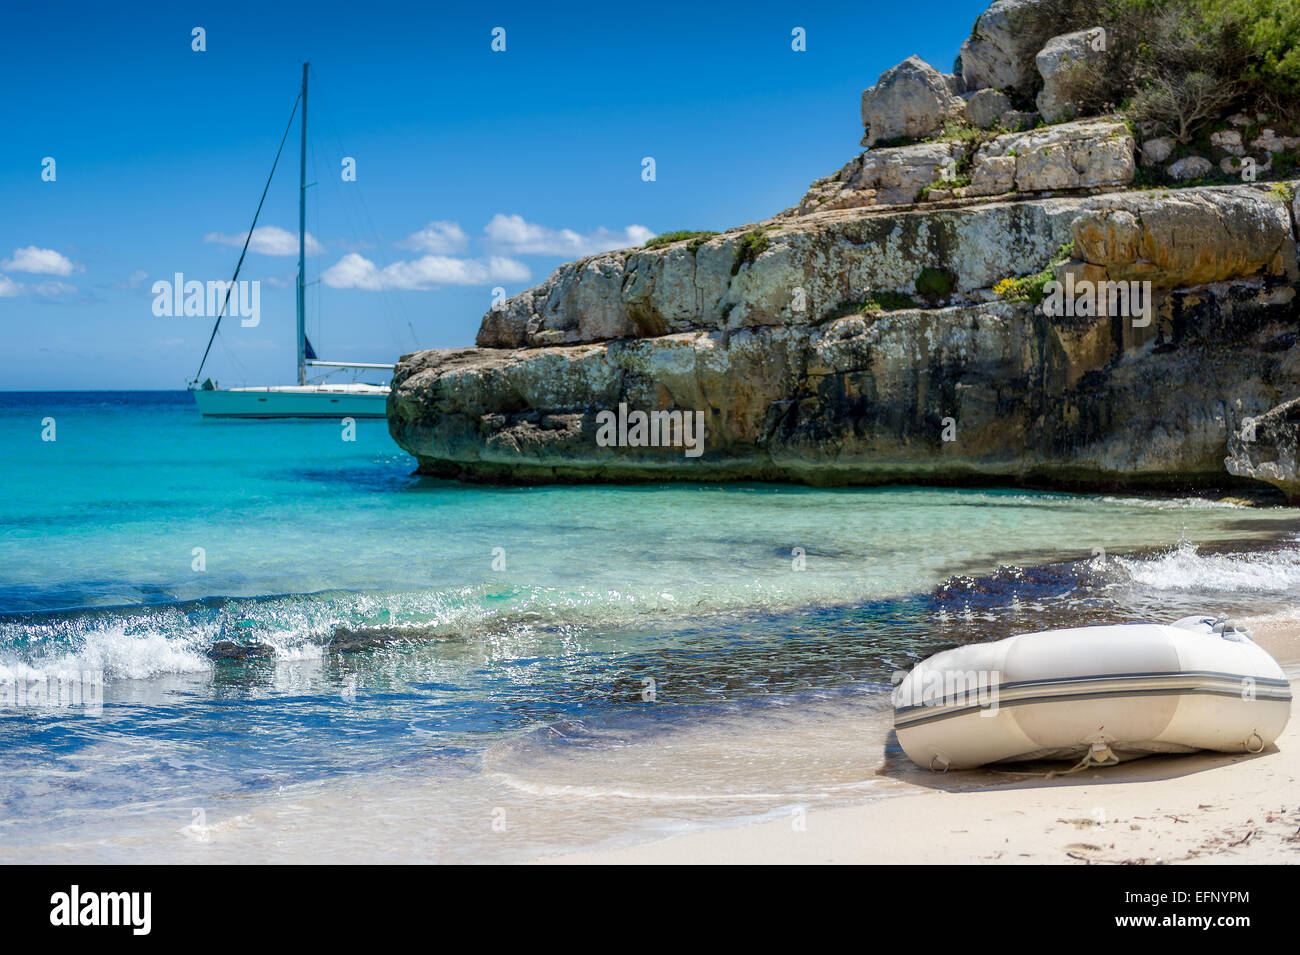 Dinghy at sand beach - Stock Image